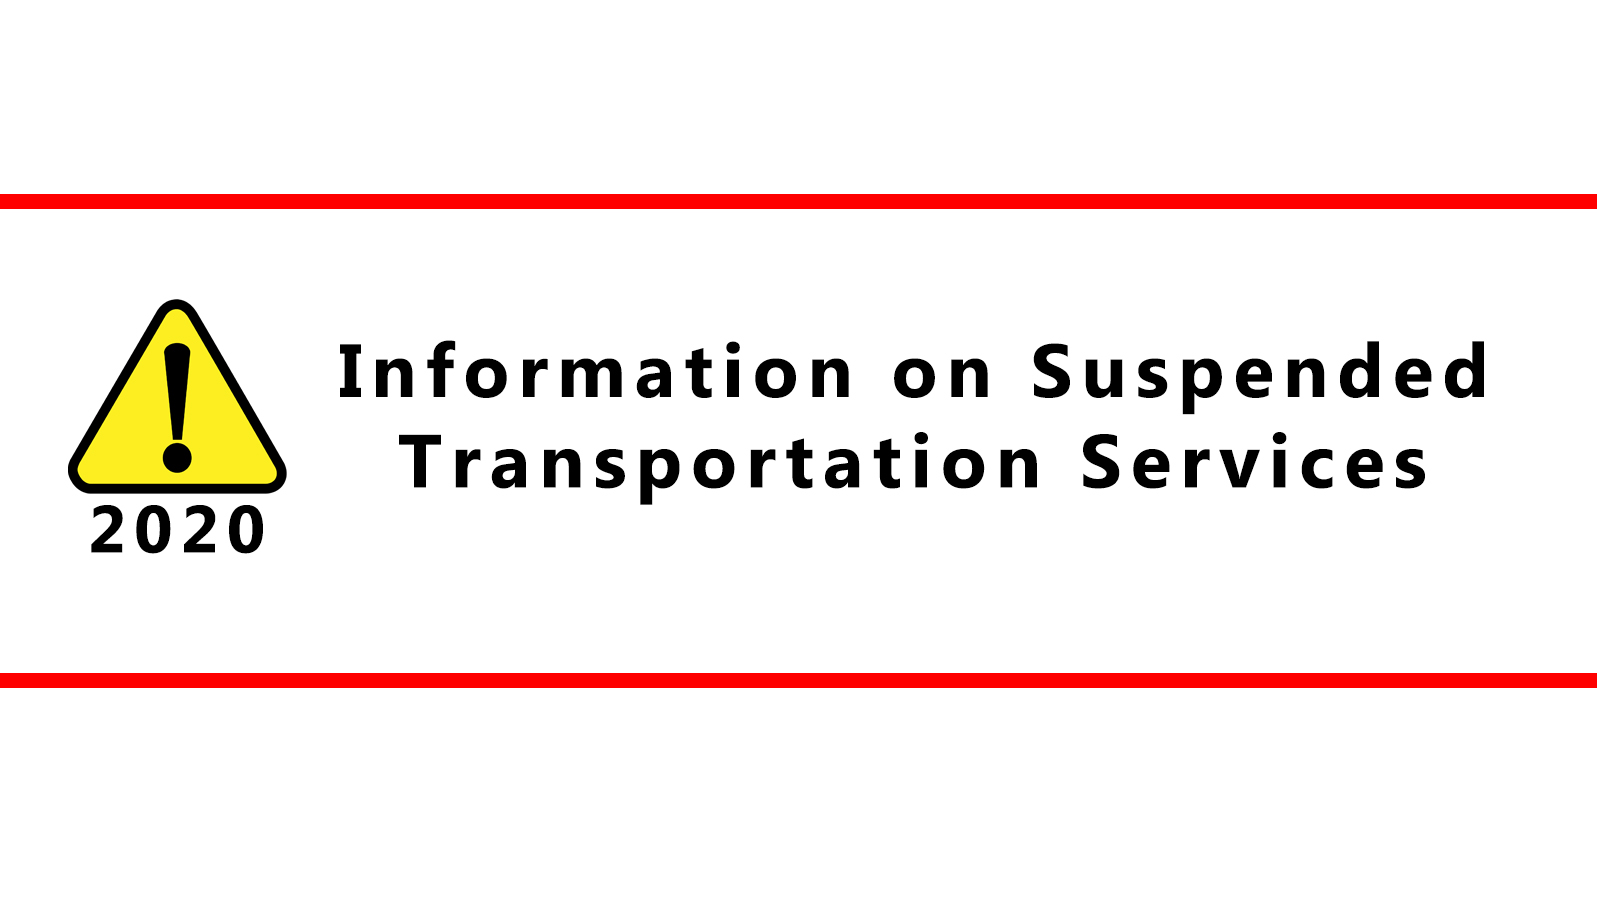 Suspended Transportation Services